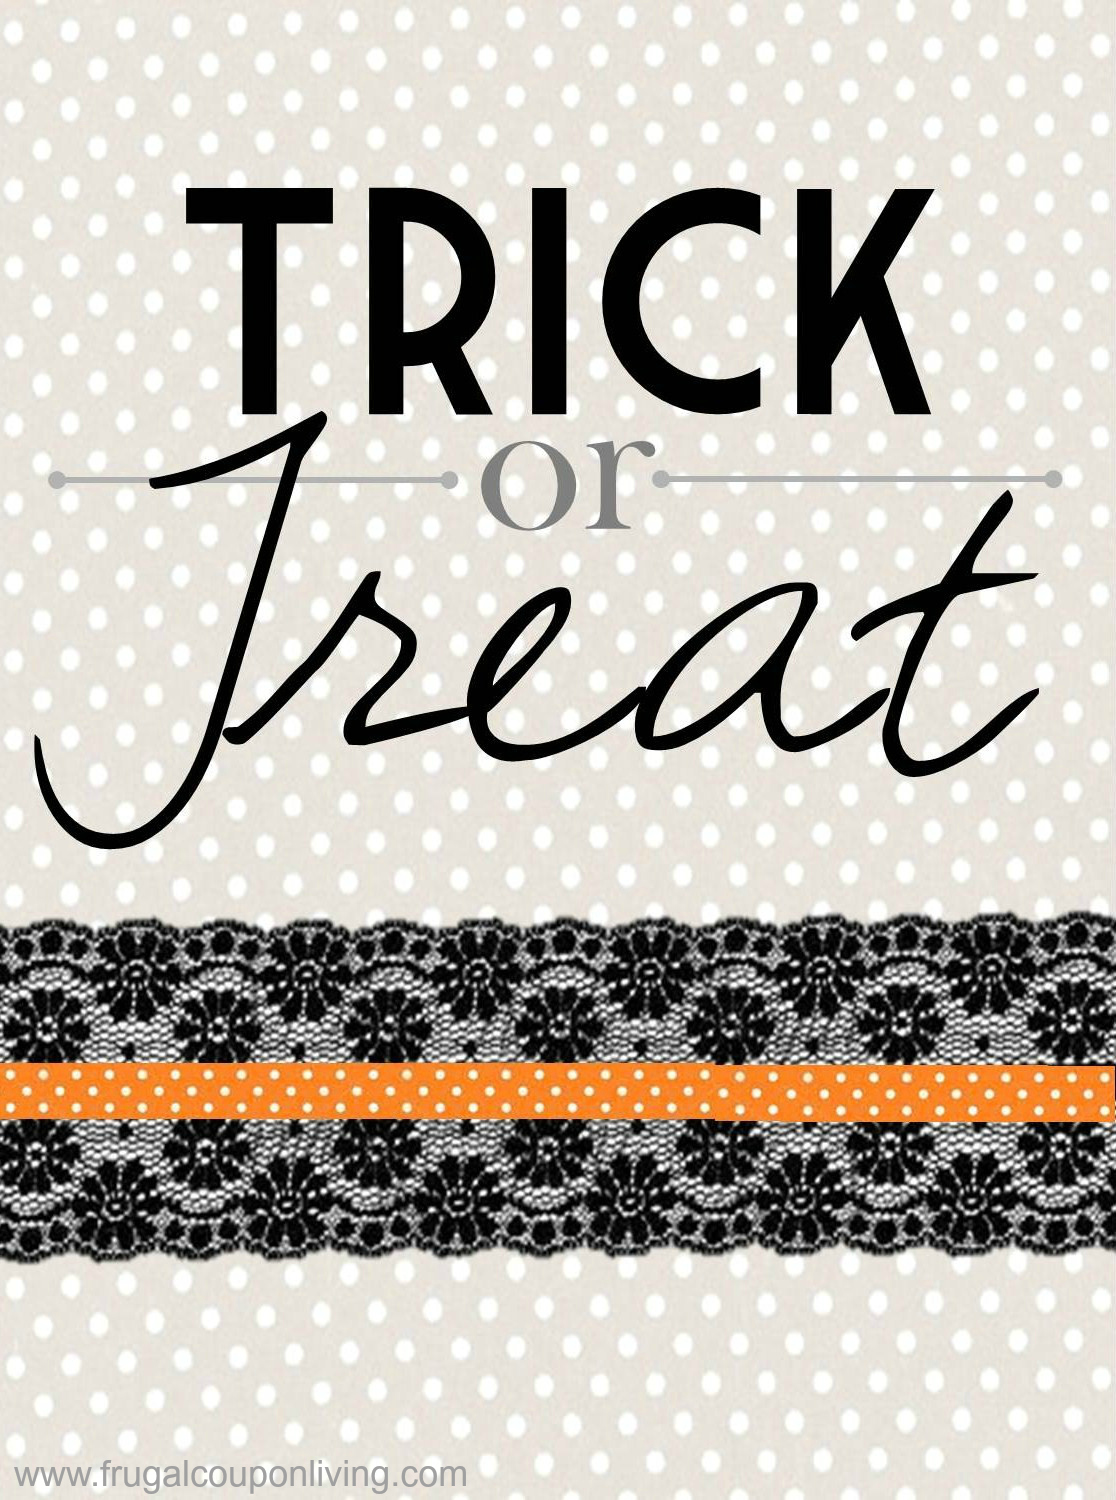 free halloween printable trick or treat sign download